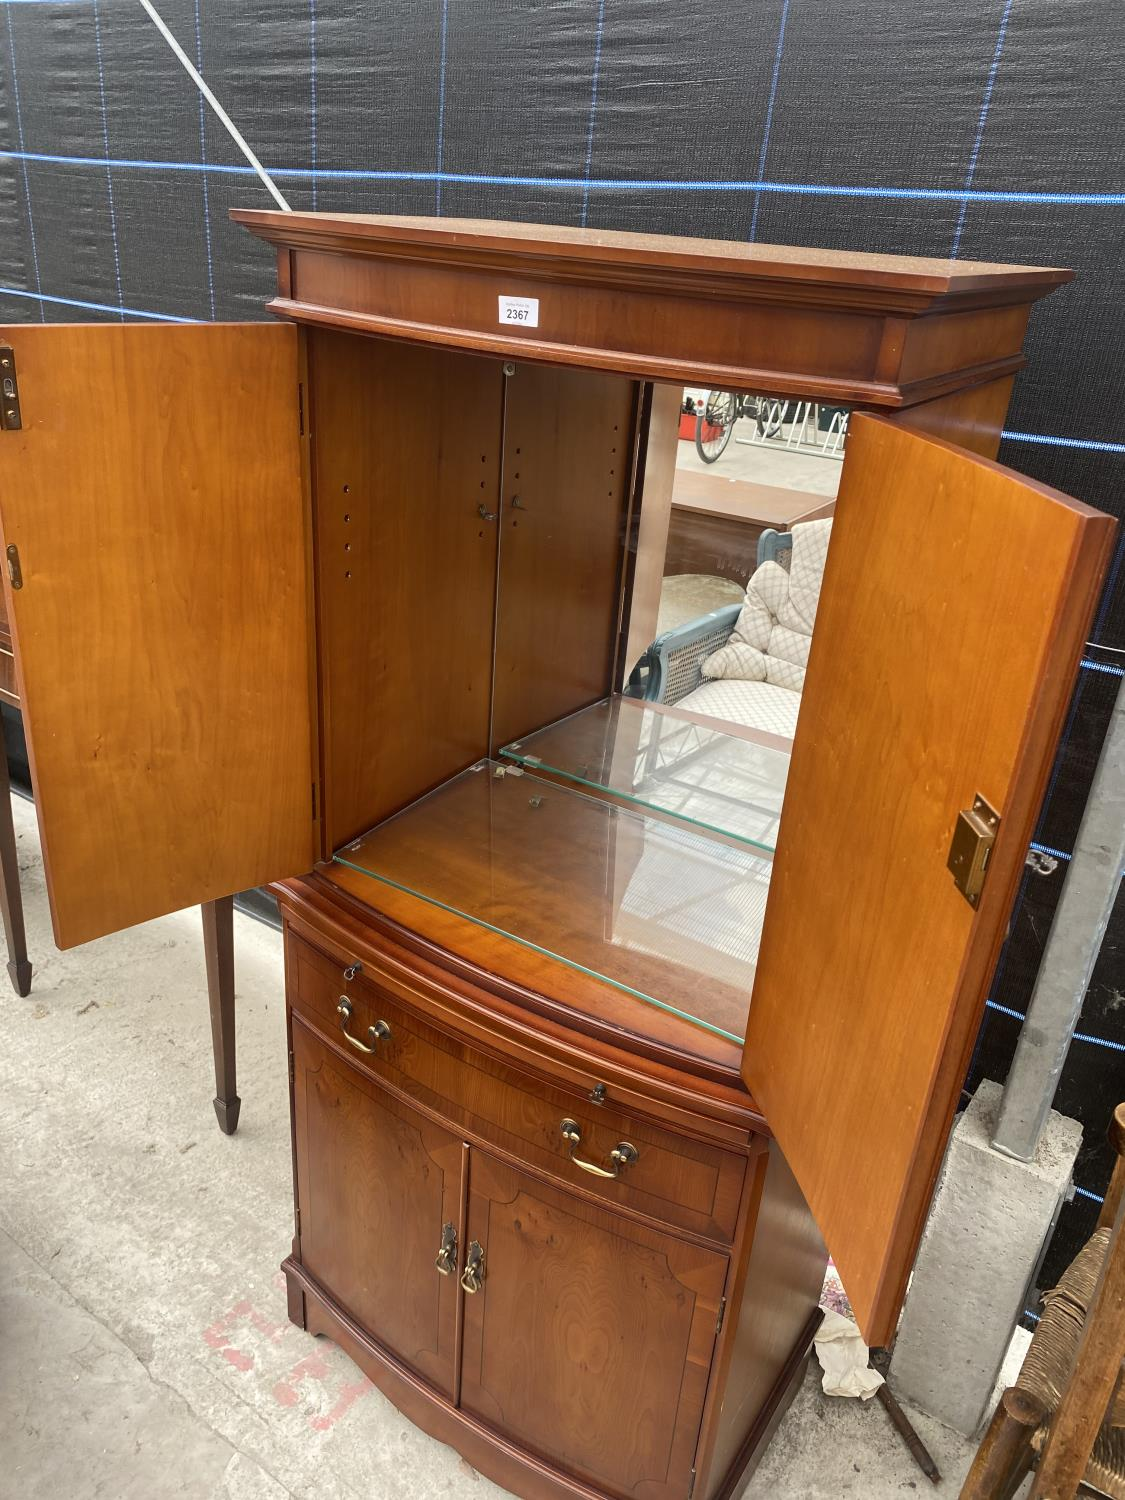 A YEW WOOD STRONGBOW FURNITURE COCKTAIL CABINET, HAVING MIRRORED UPPER PORTION, DRAWER, CUPBOARDS - Image 4 of 5